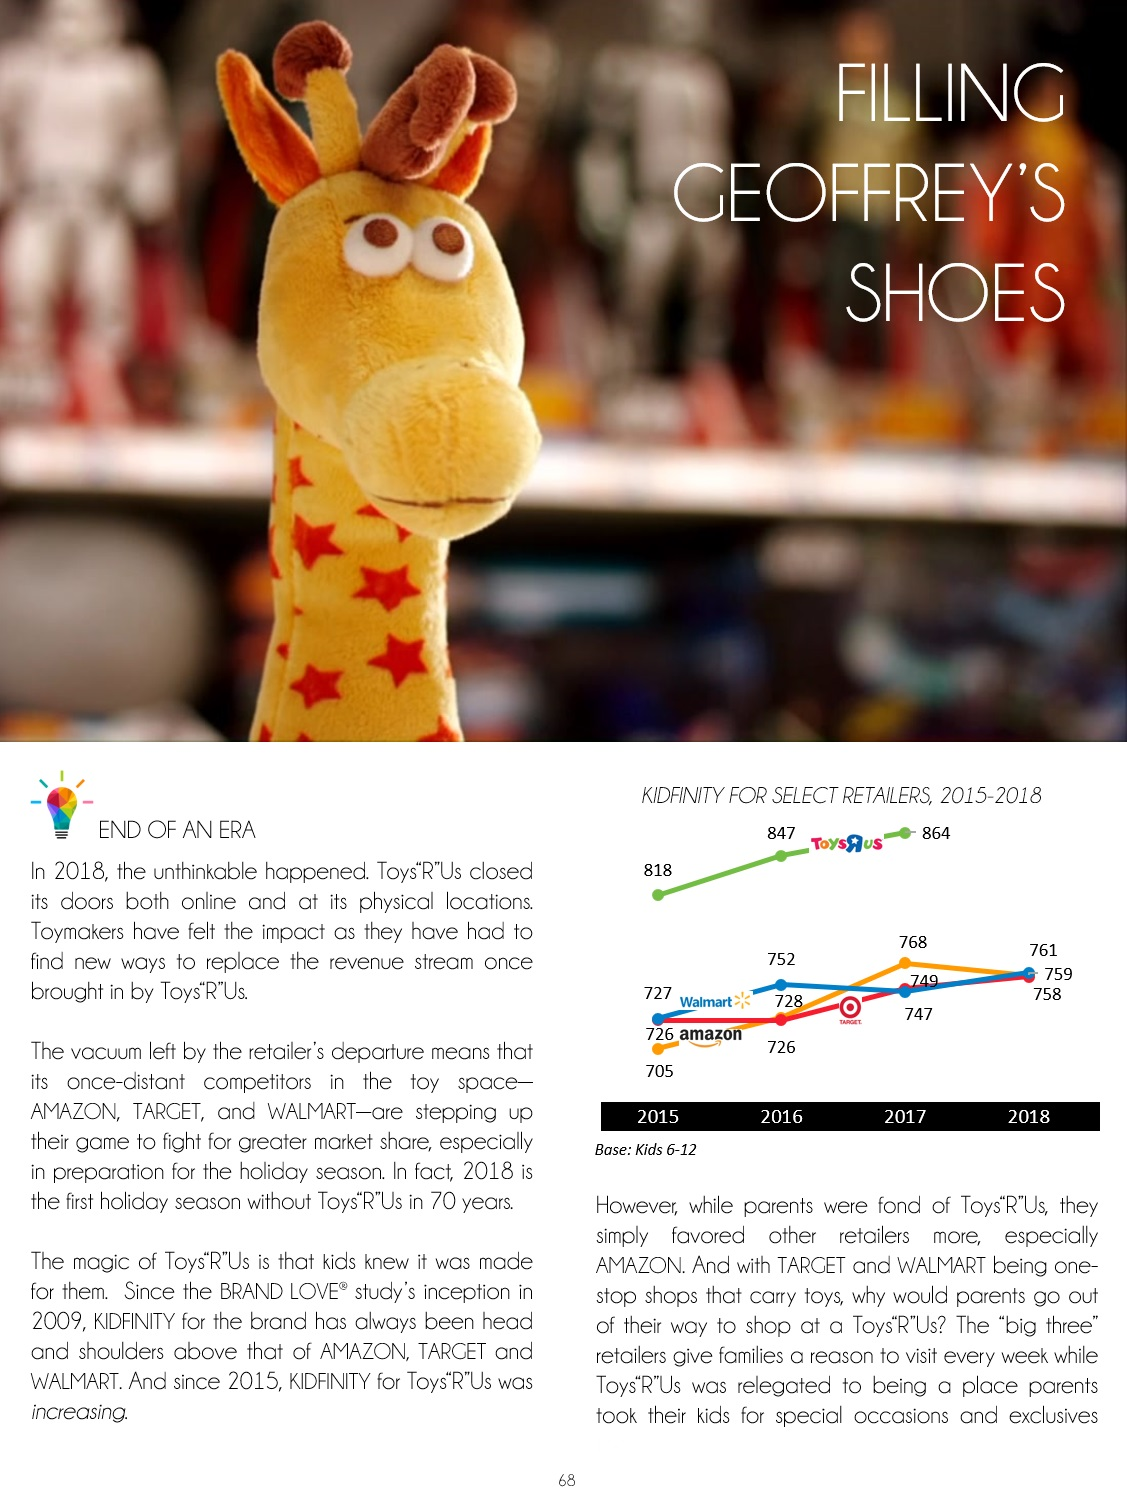 Filling Geoffrey's Shoes Preview